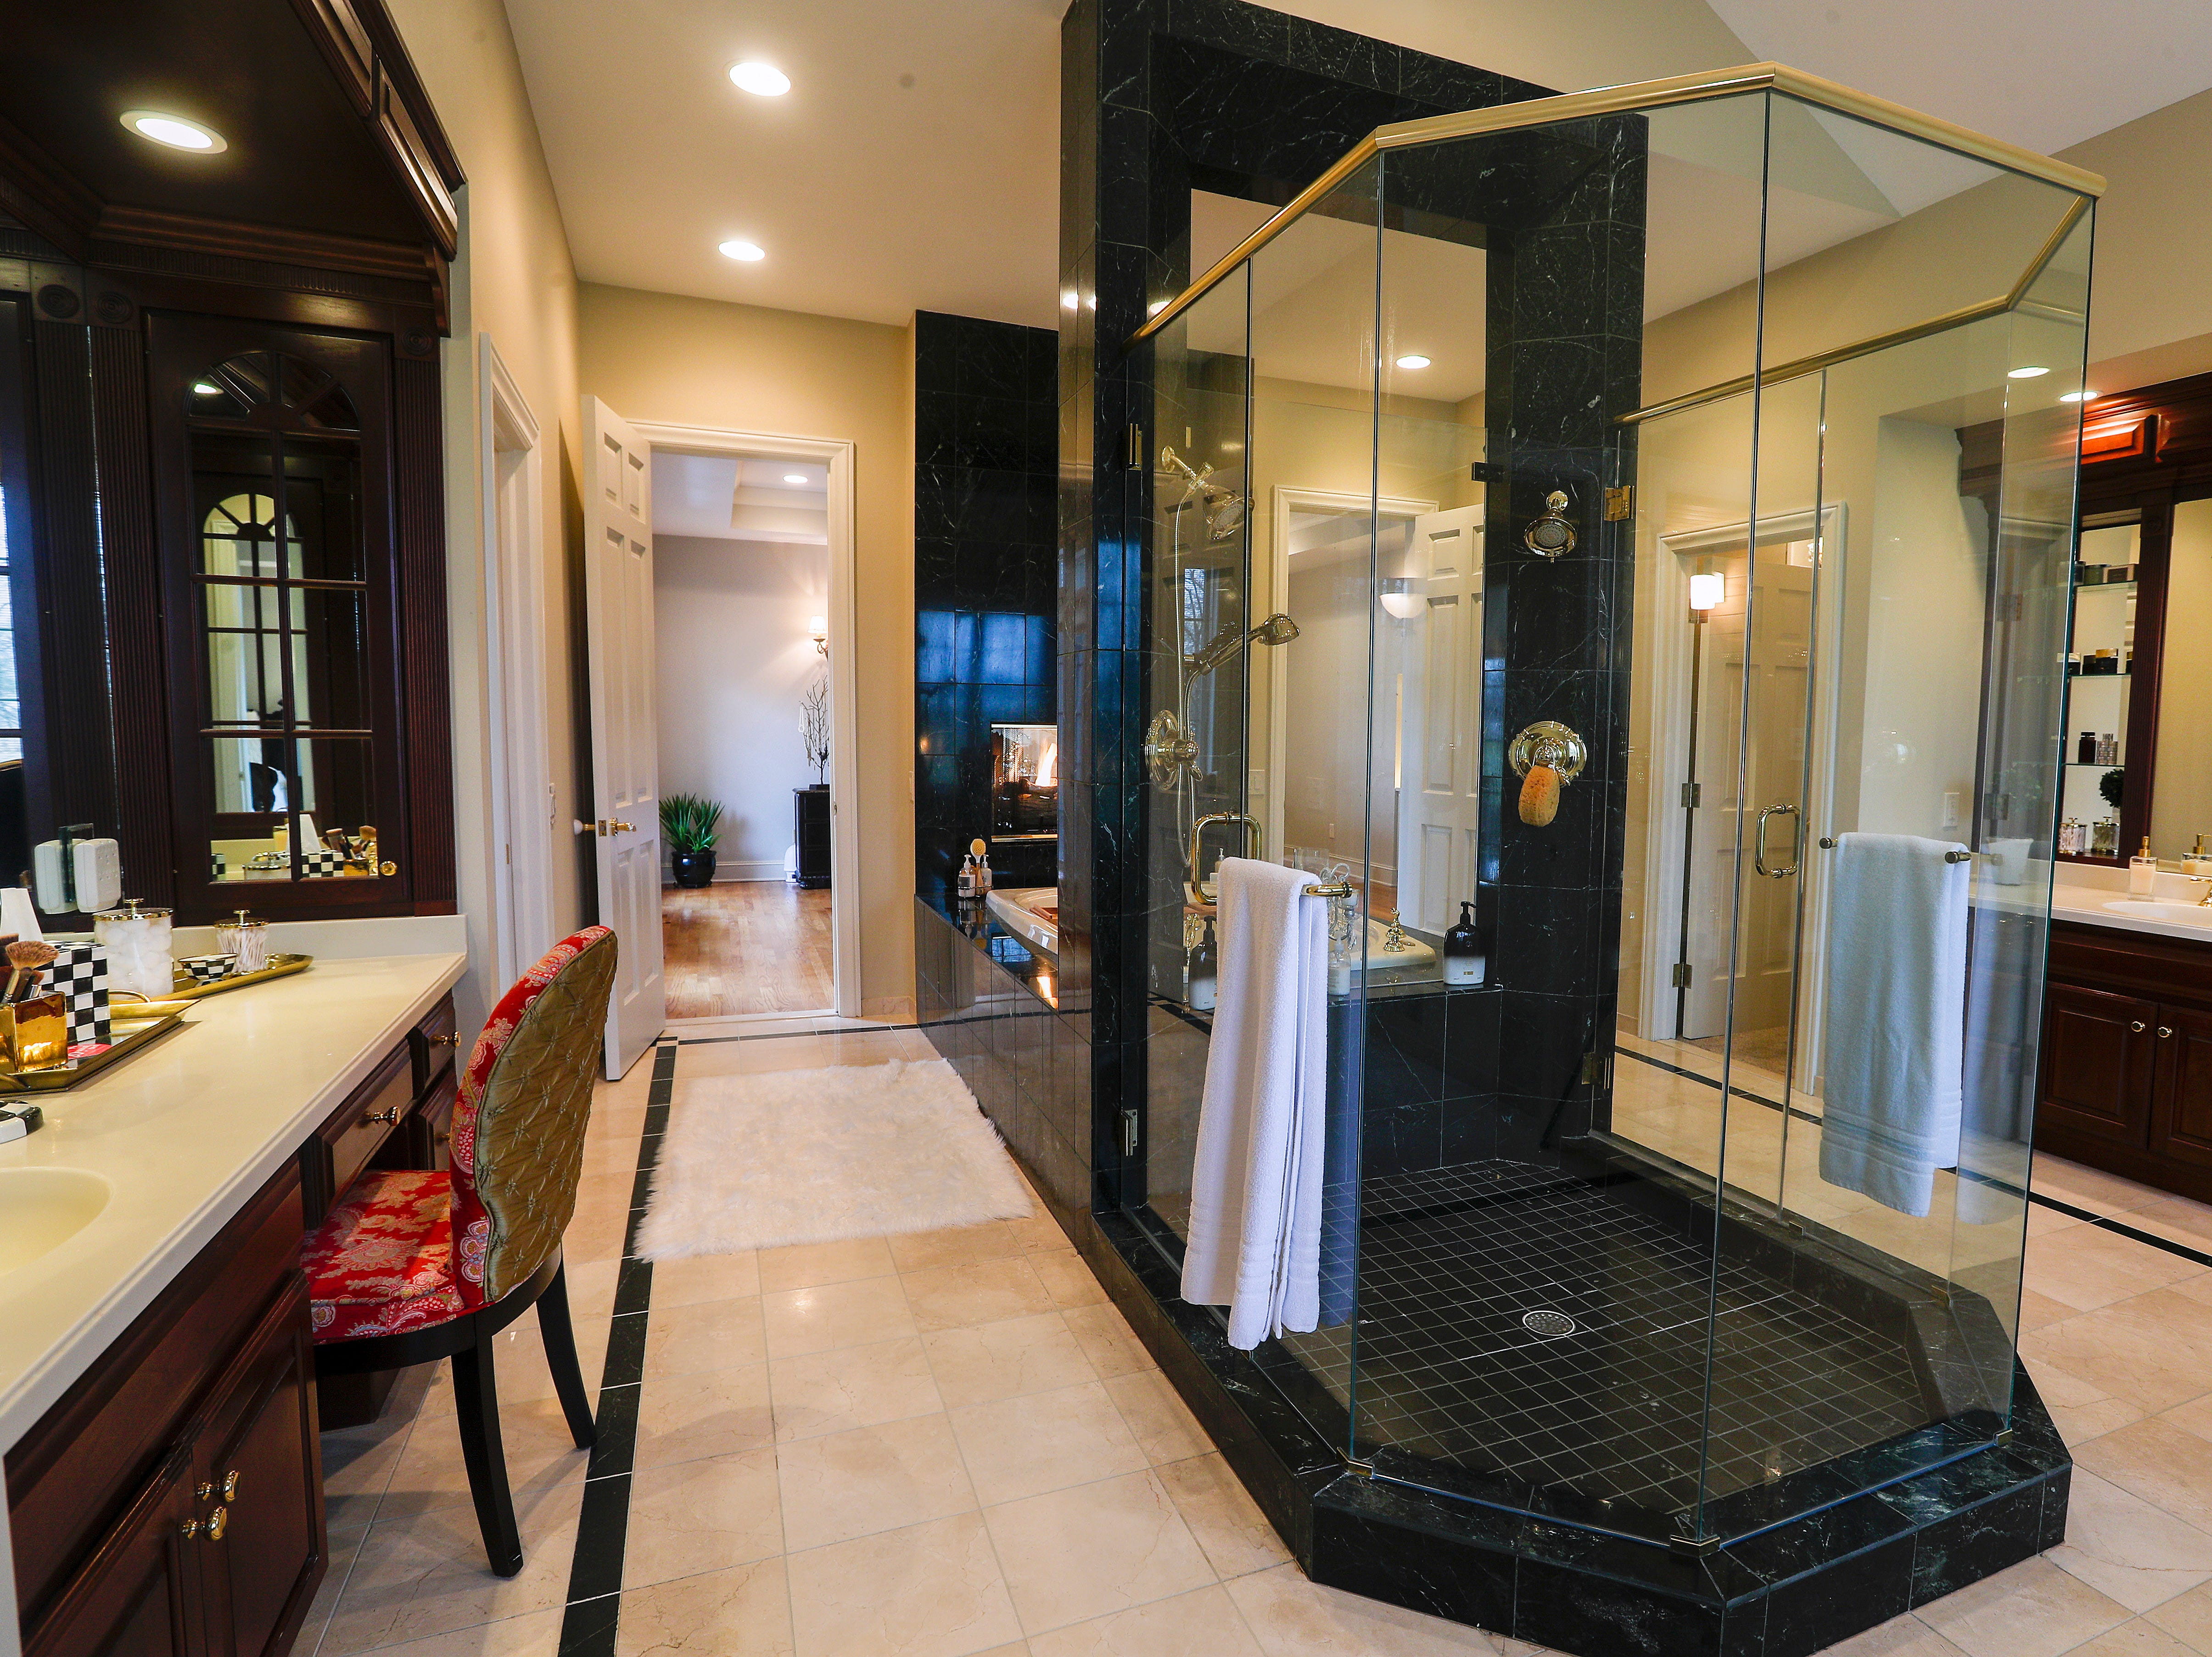 A huge master bathroom includes a large glass shower.